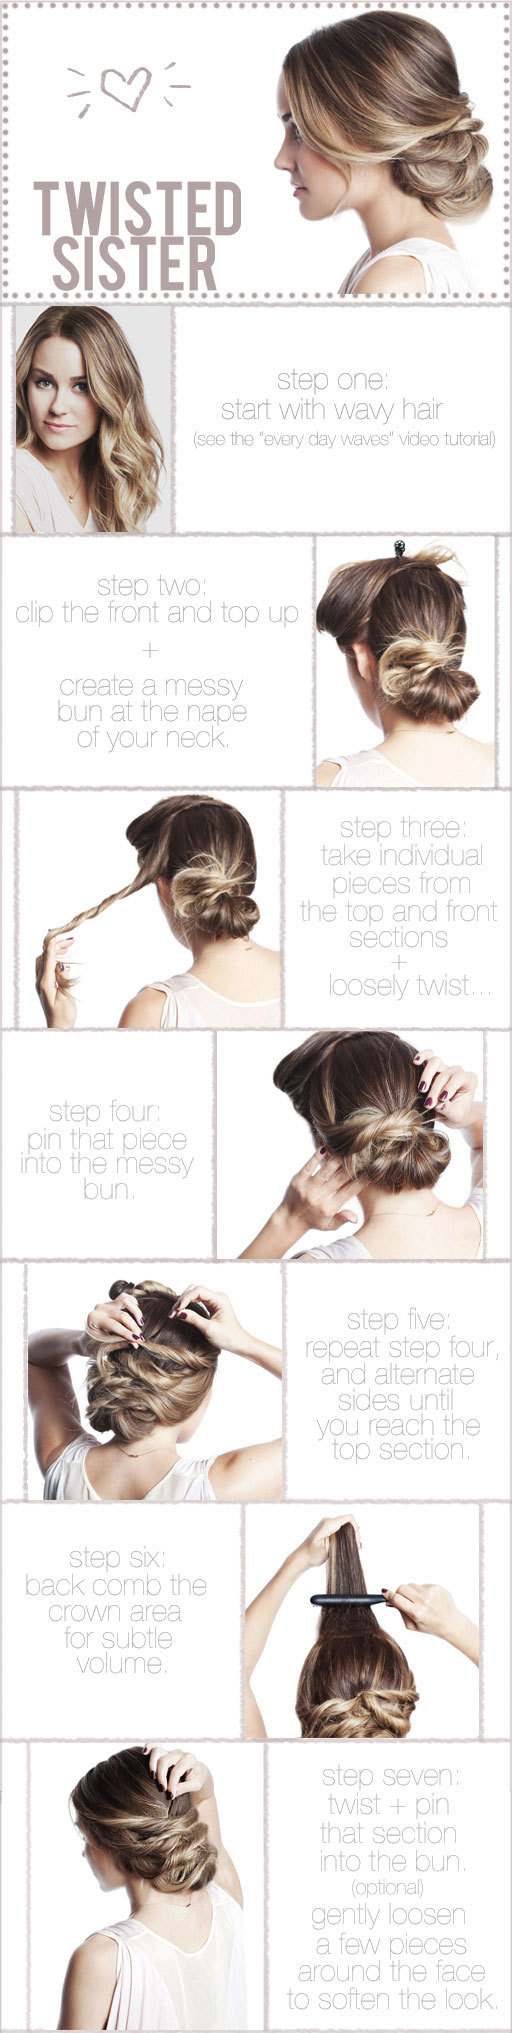 Three-fav-pre-wedding-diy-bridal-hairstyles-how-to-tutorials-for-brides-3.full